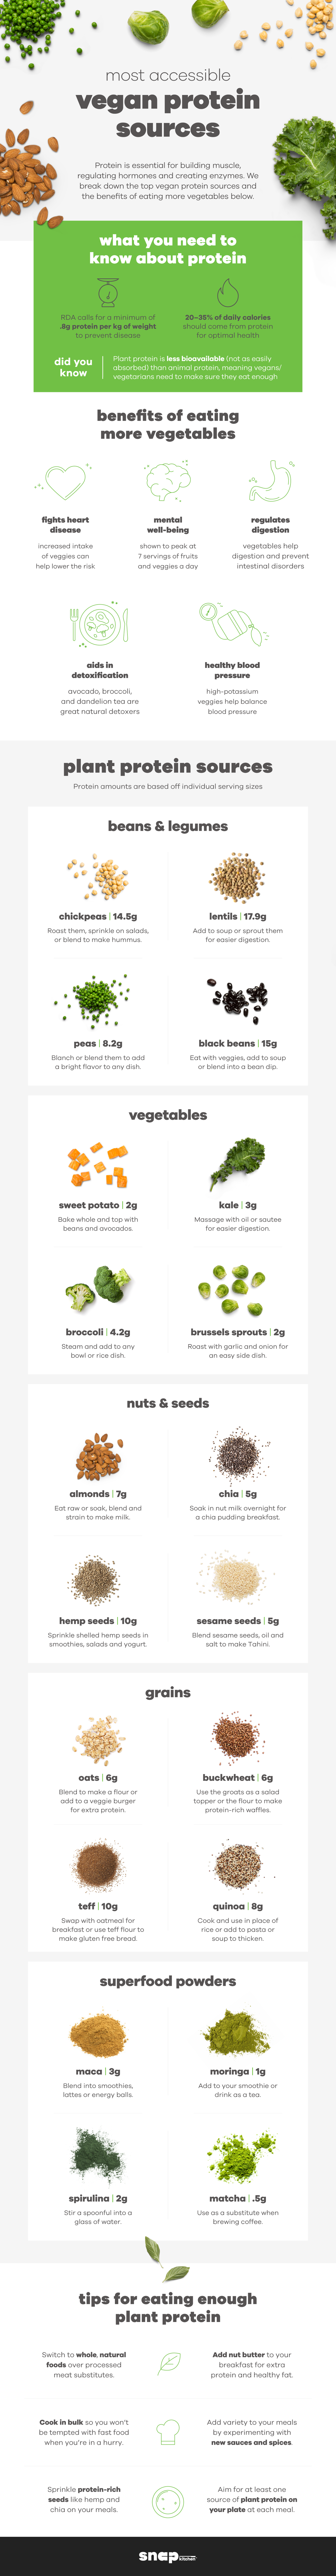 vegan-protein-sources.png